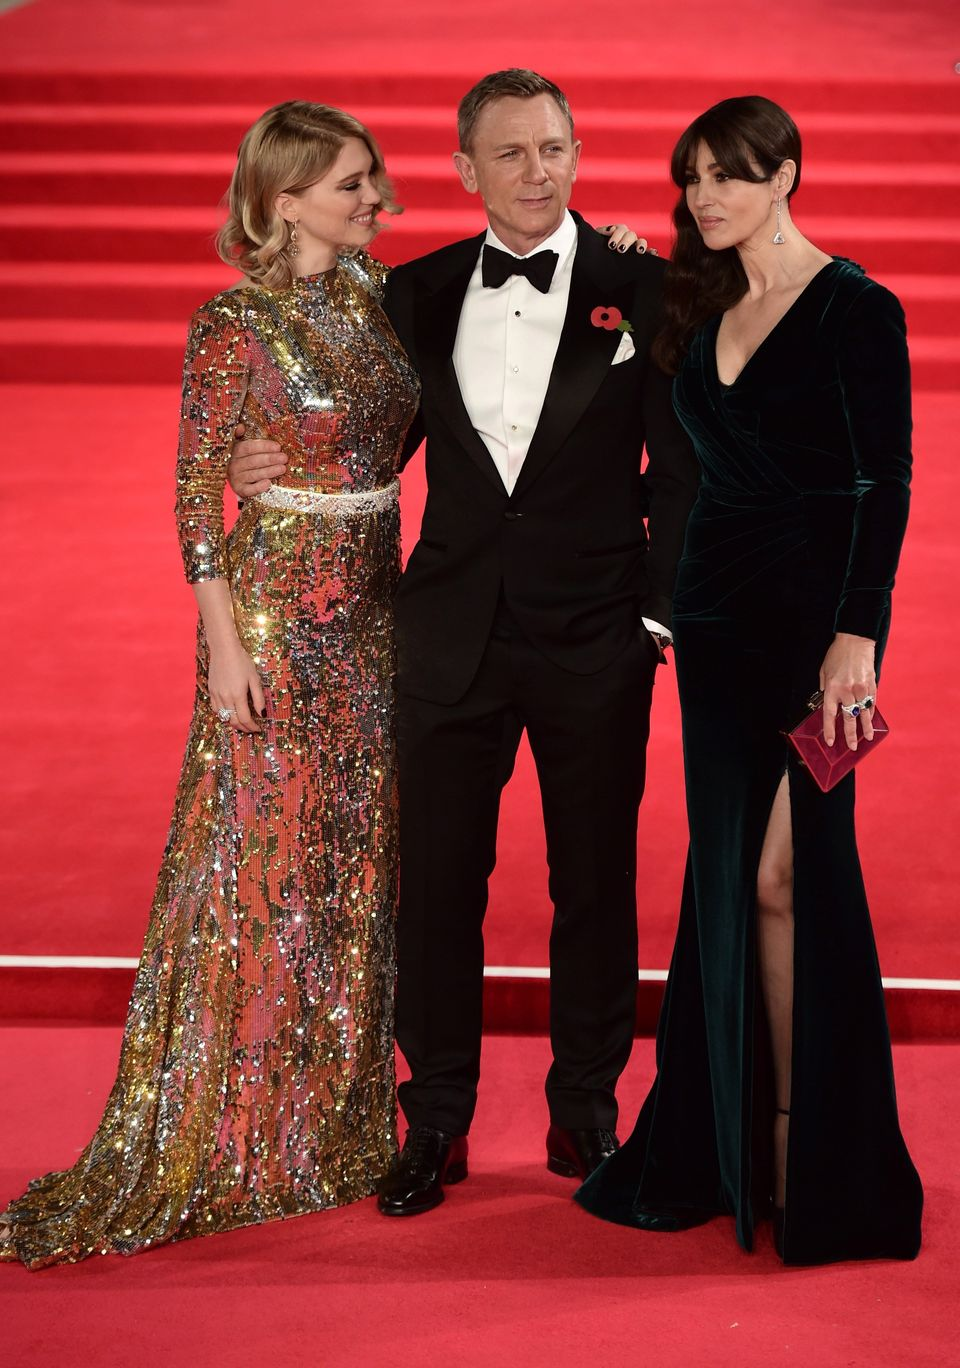 (L-R) French actress Lea Seydoux, British actor Daniel Craig and Italian actress Monica Bellucci pose on arrival for the worl